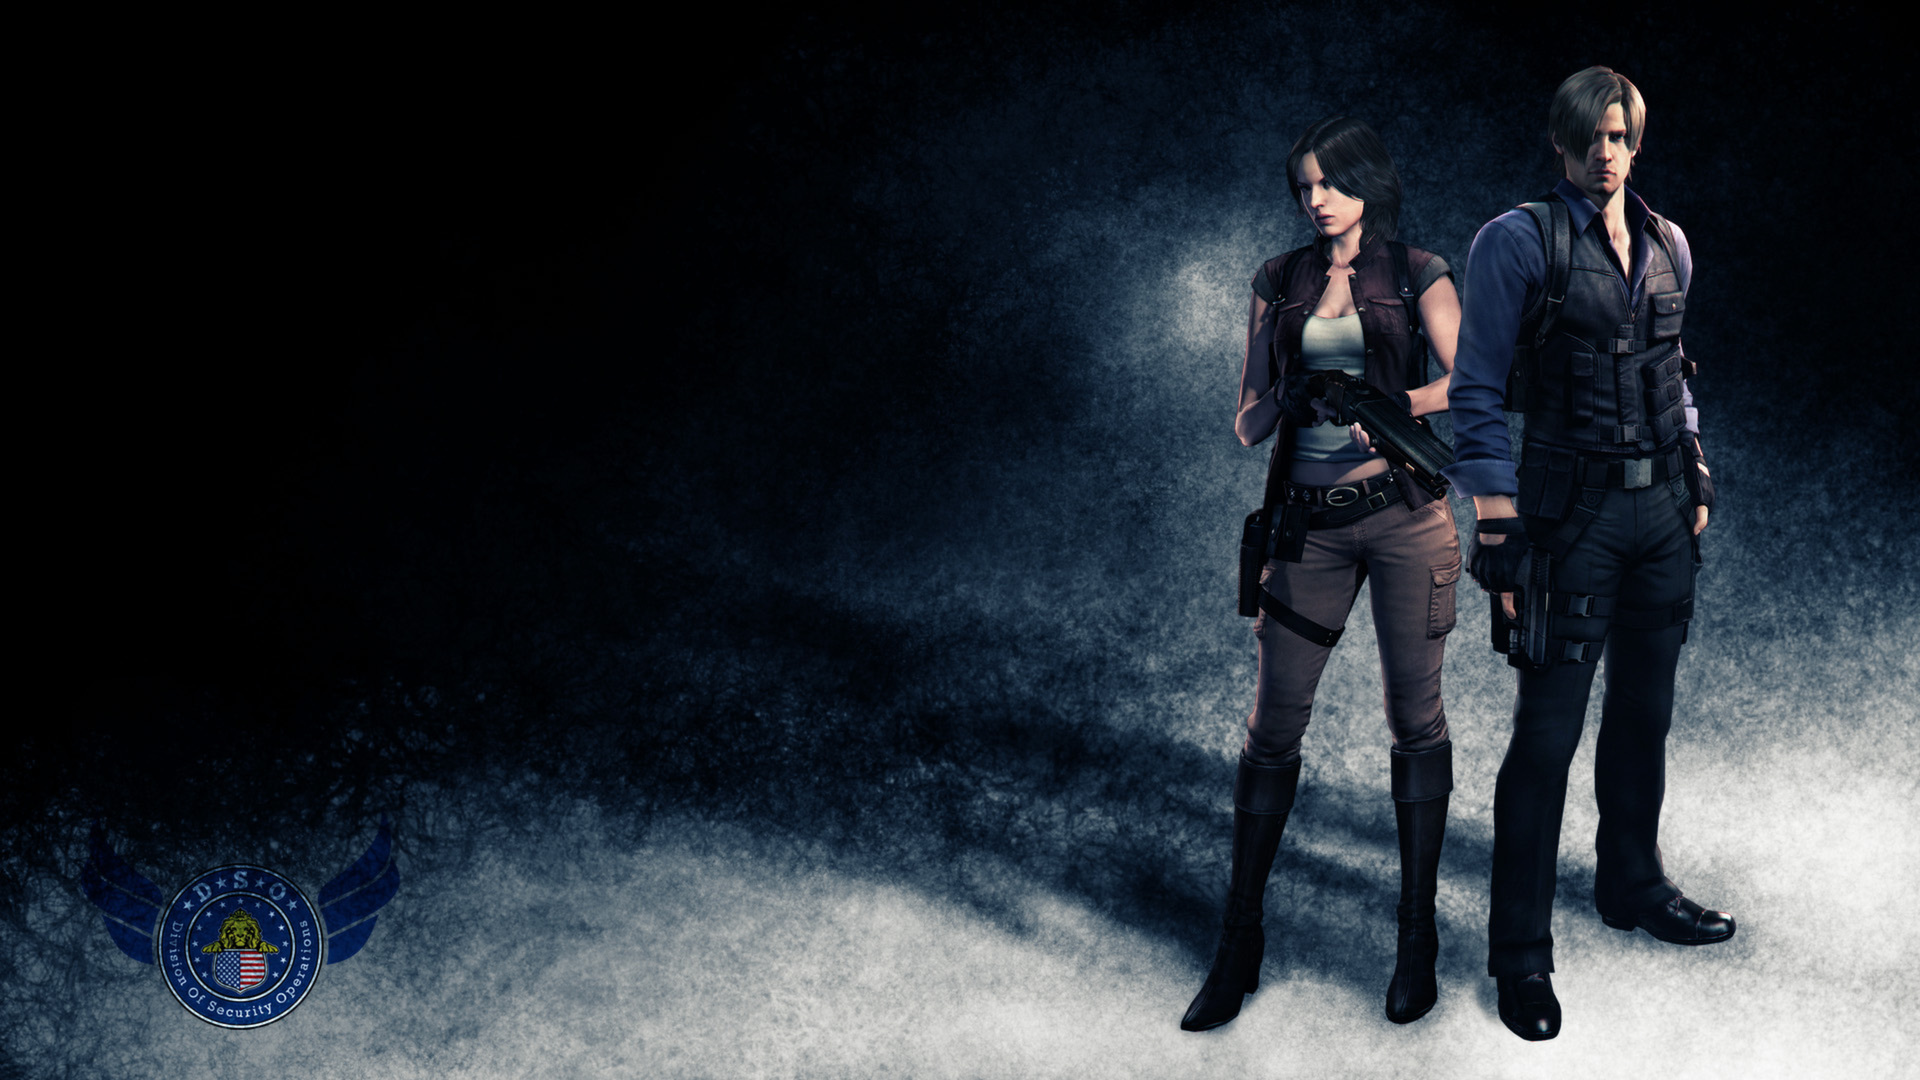 High Resolution Image Of Resident Evil Wallpaper Of Resident Evil